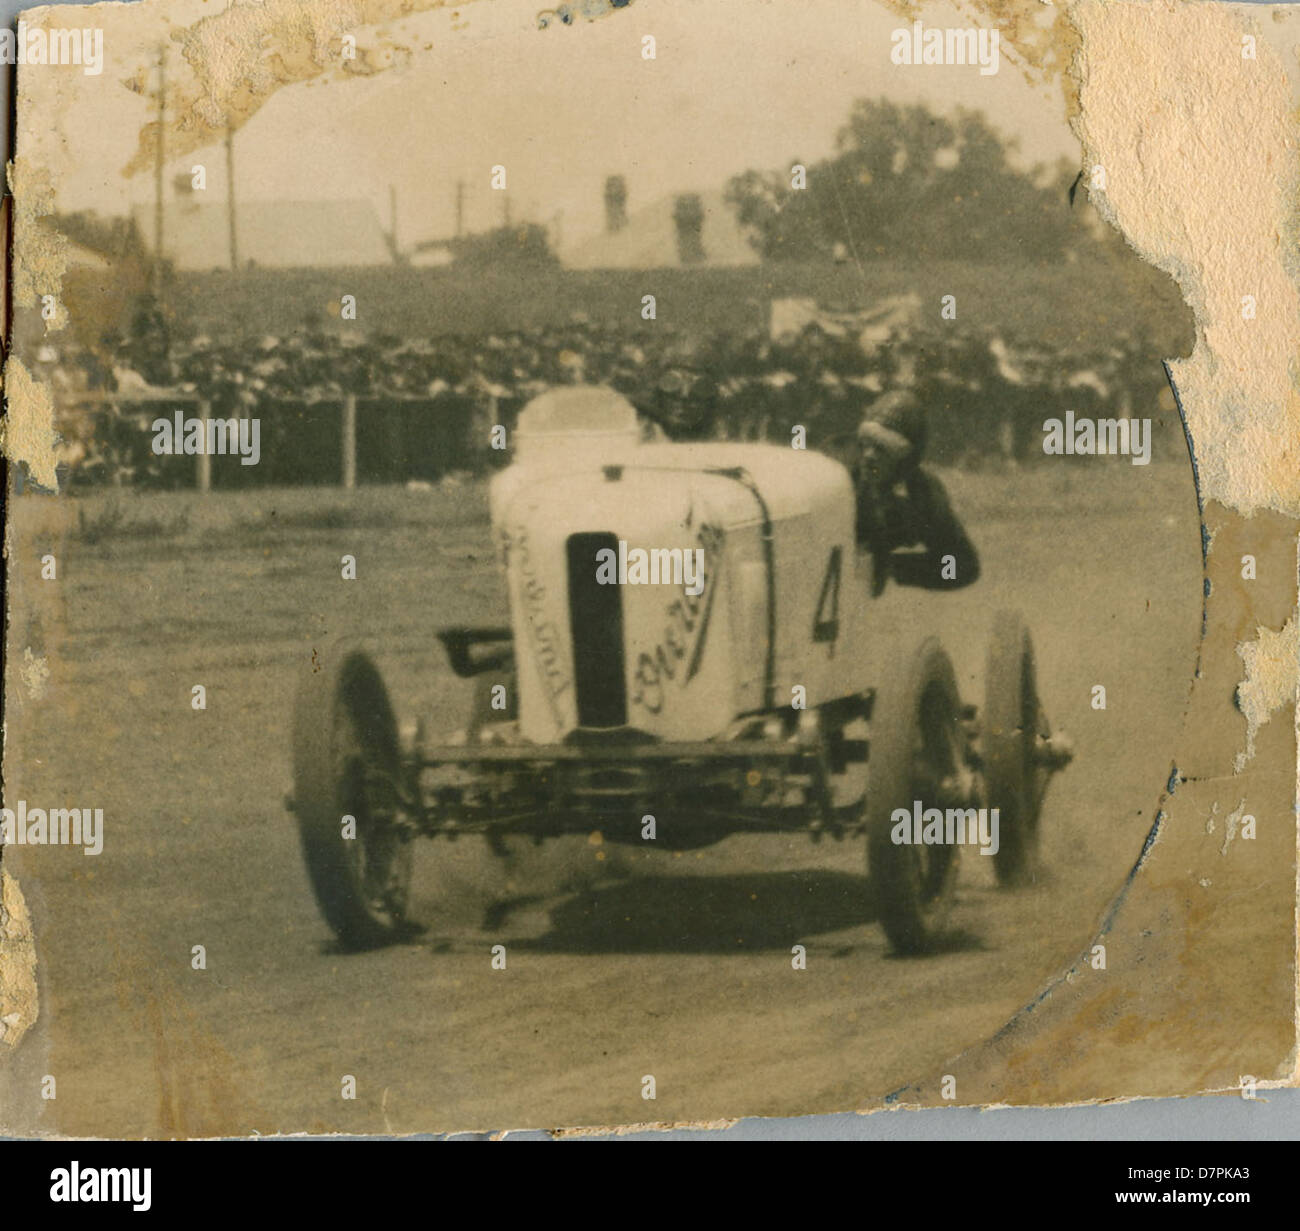 Don Harkness at the wheel of his Overland Sports car 'Whitey' at race meeting - Stock Image